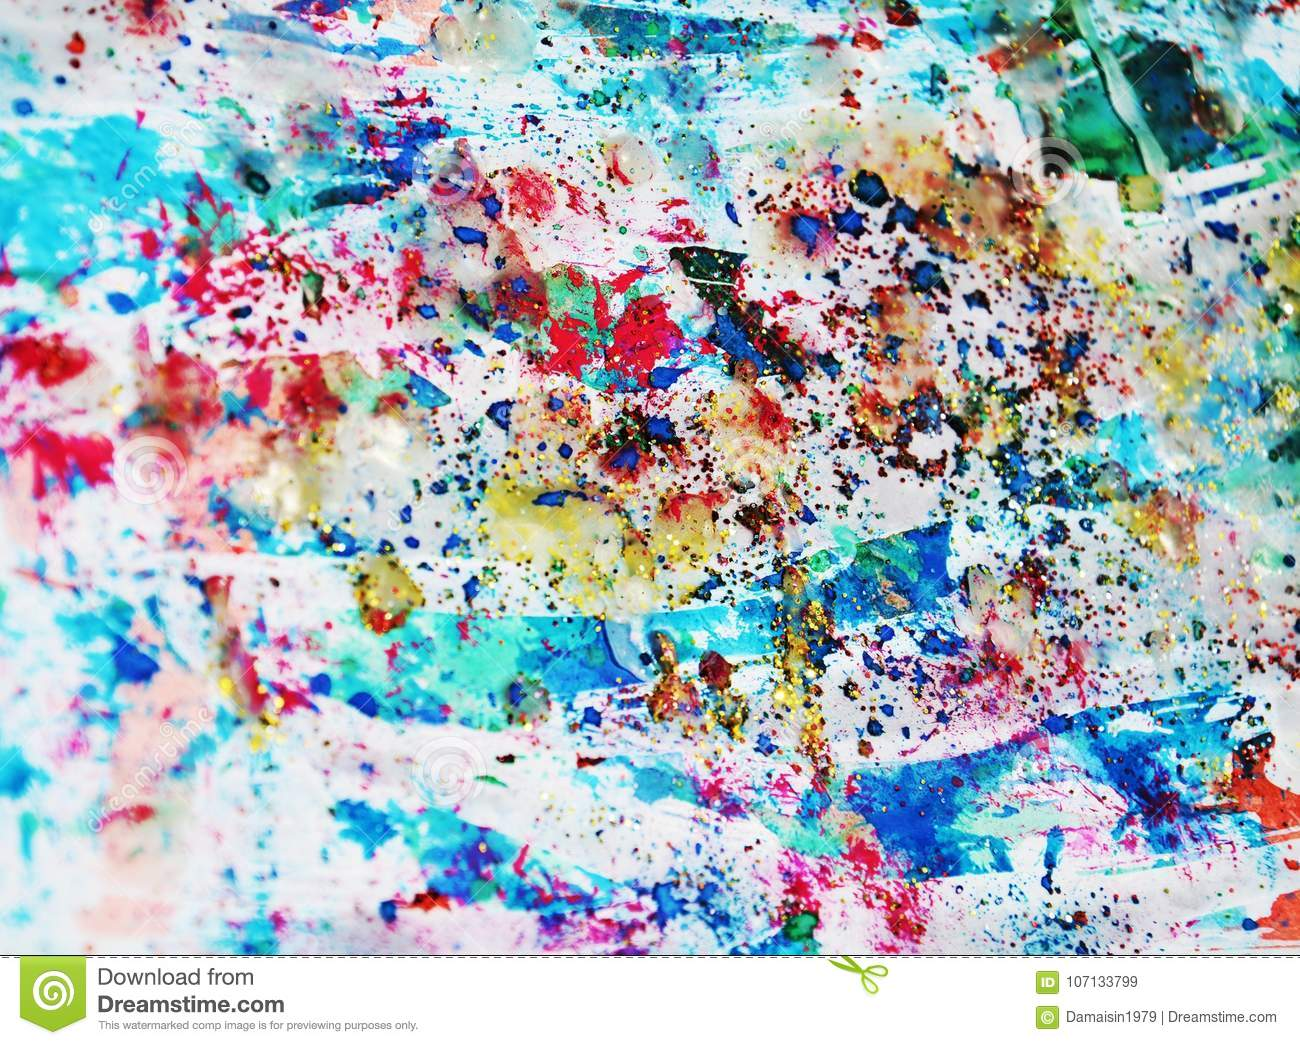 Pastel blue red paint, waxy spots, watercolor paint, colorful hues